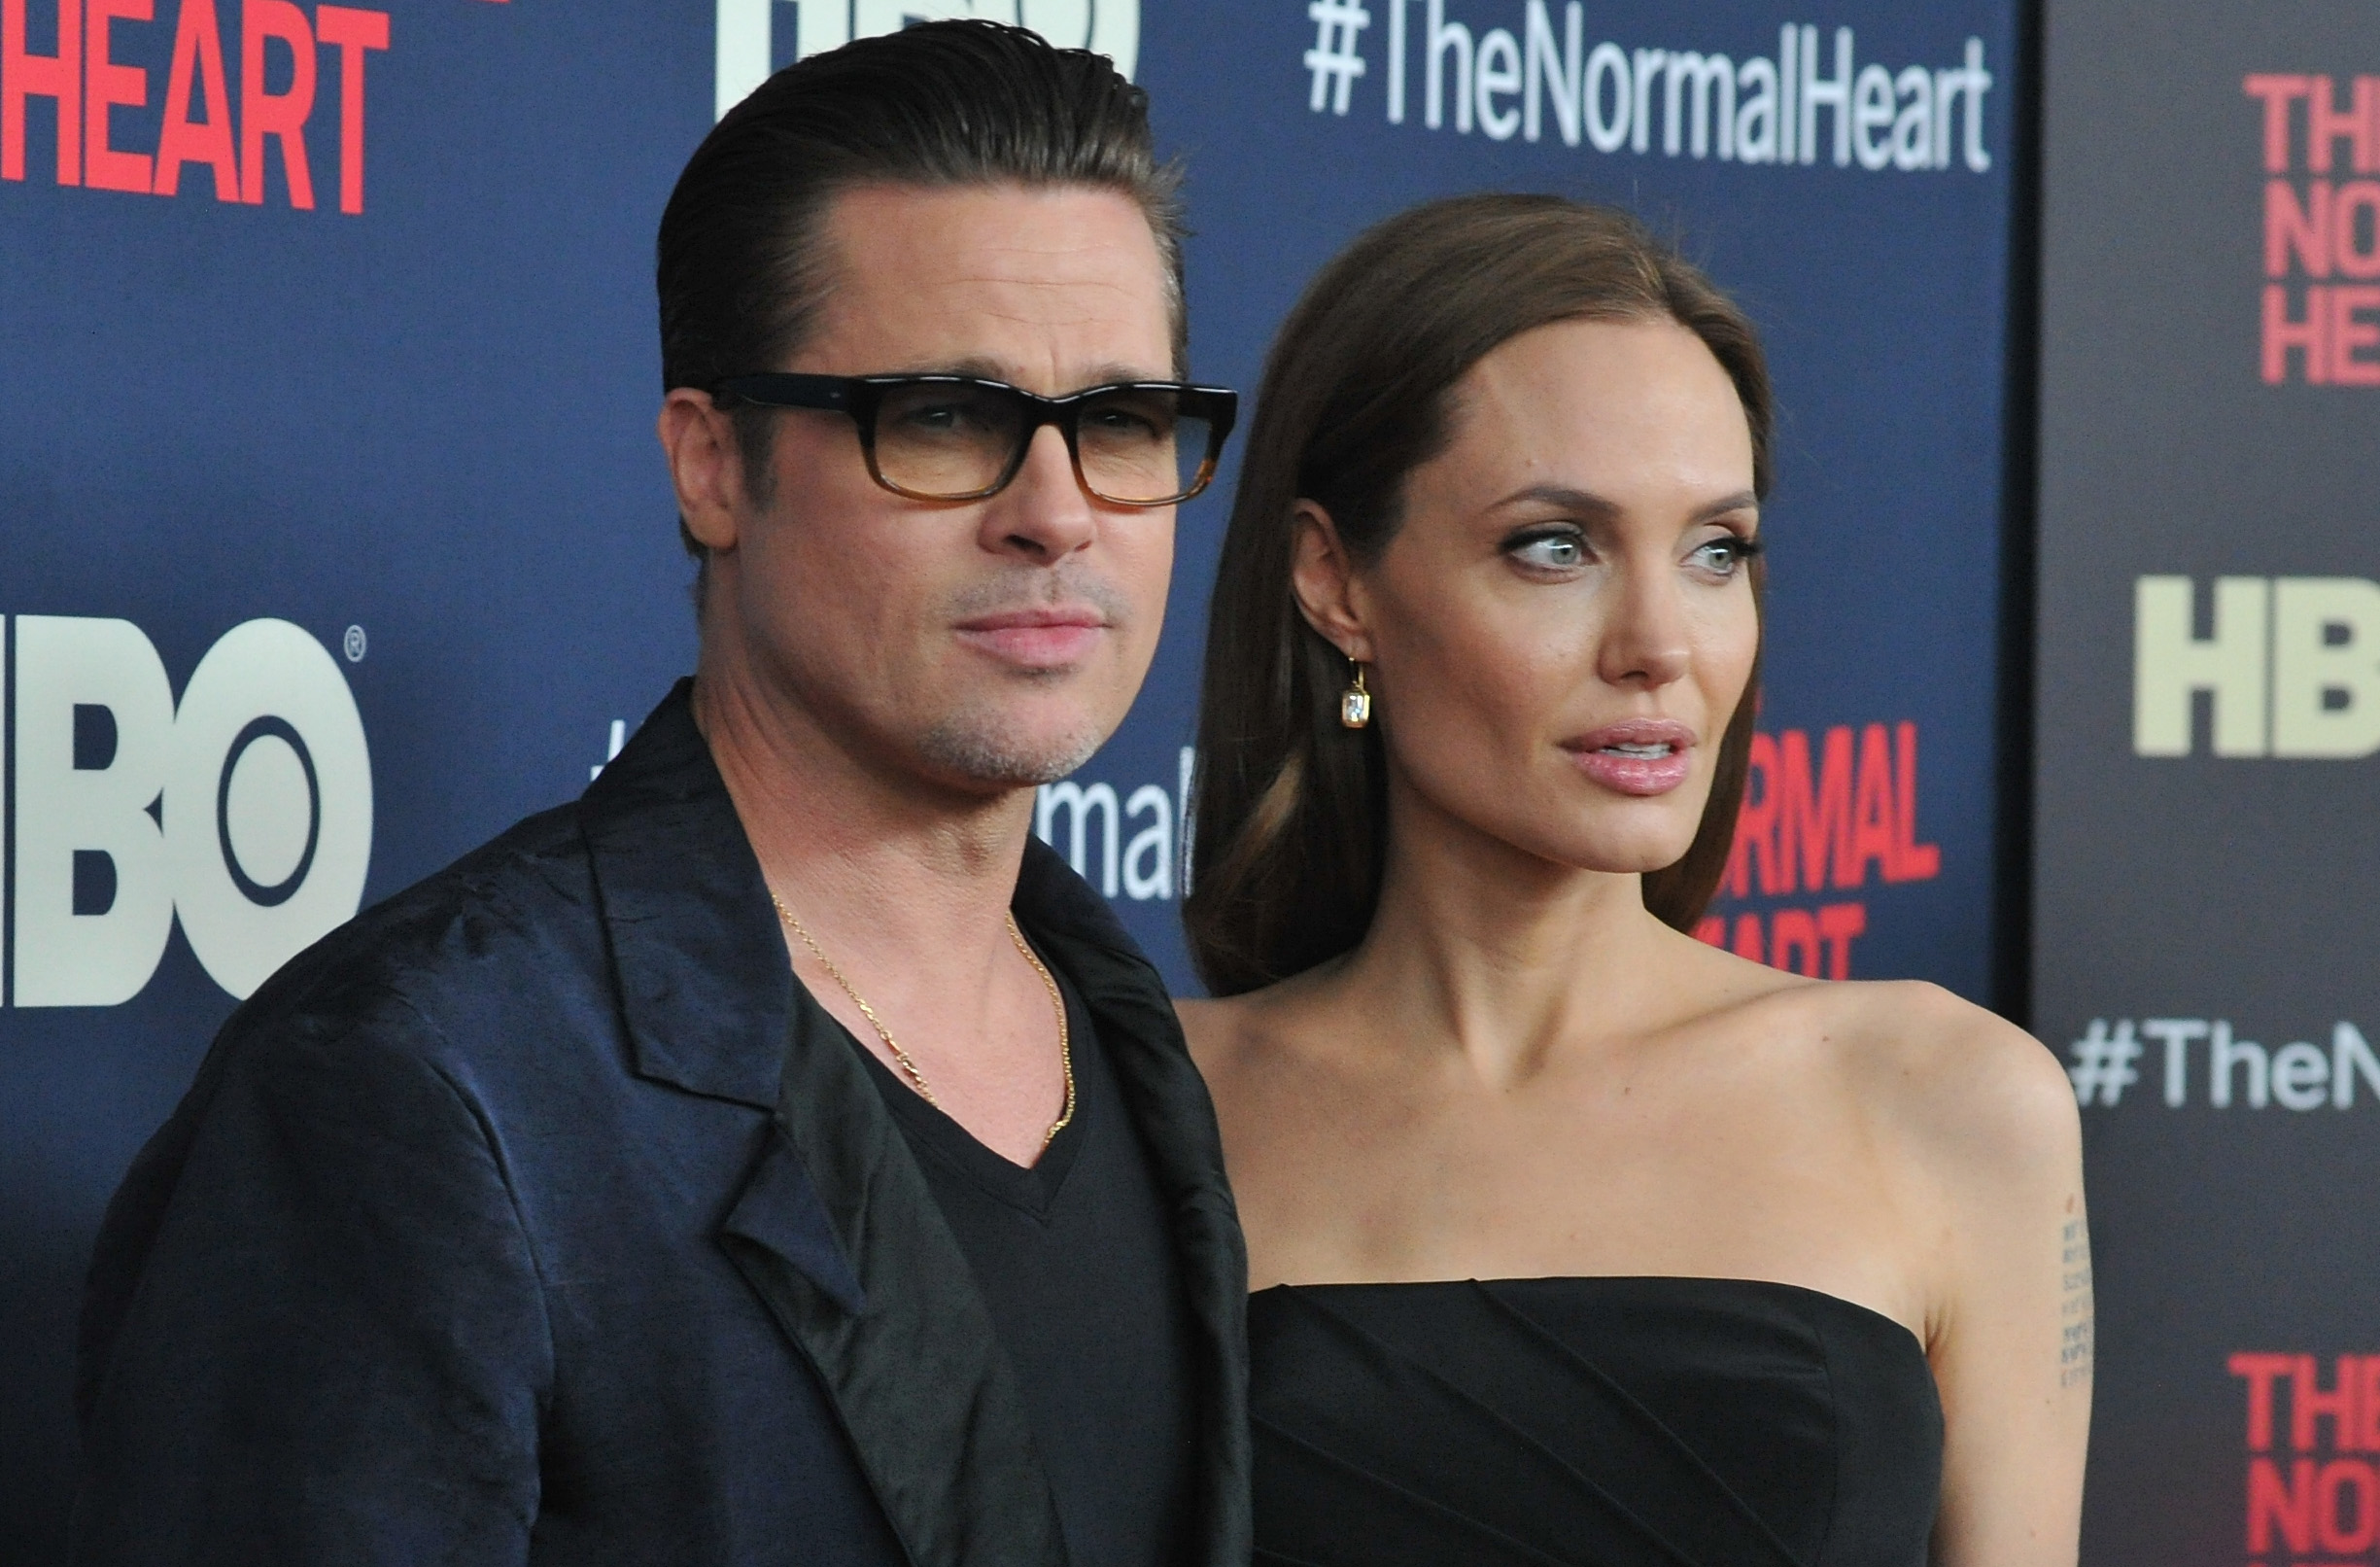 Brad Pitt and Angelina Jolie attend the New York premiere of  The Normal Heart  at Ziegfeld Theater on May 12, 2014 in New York City.